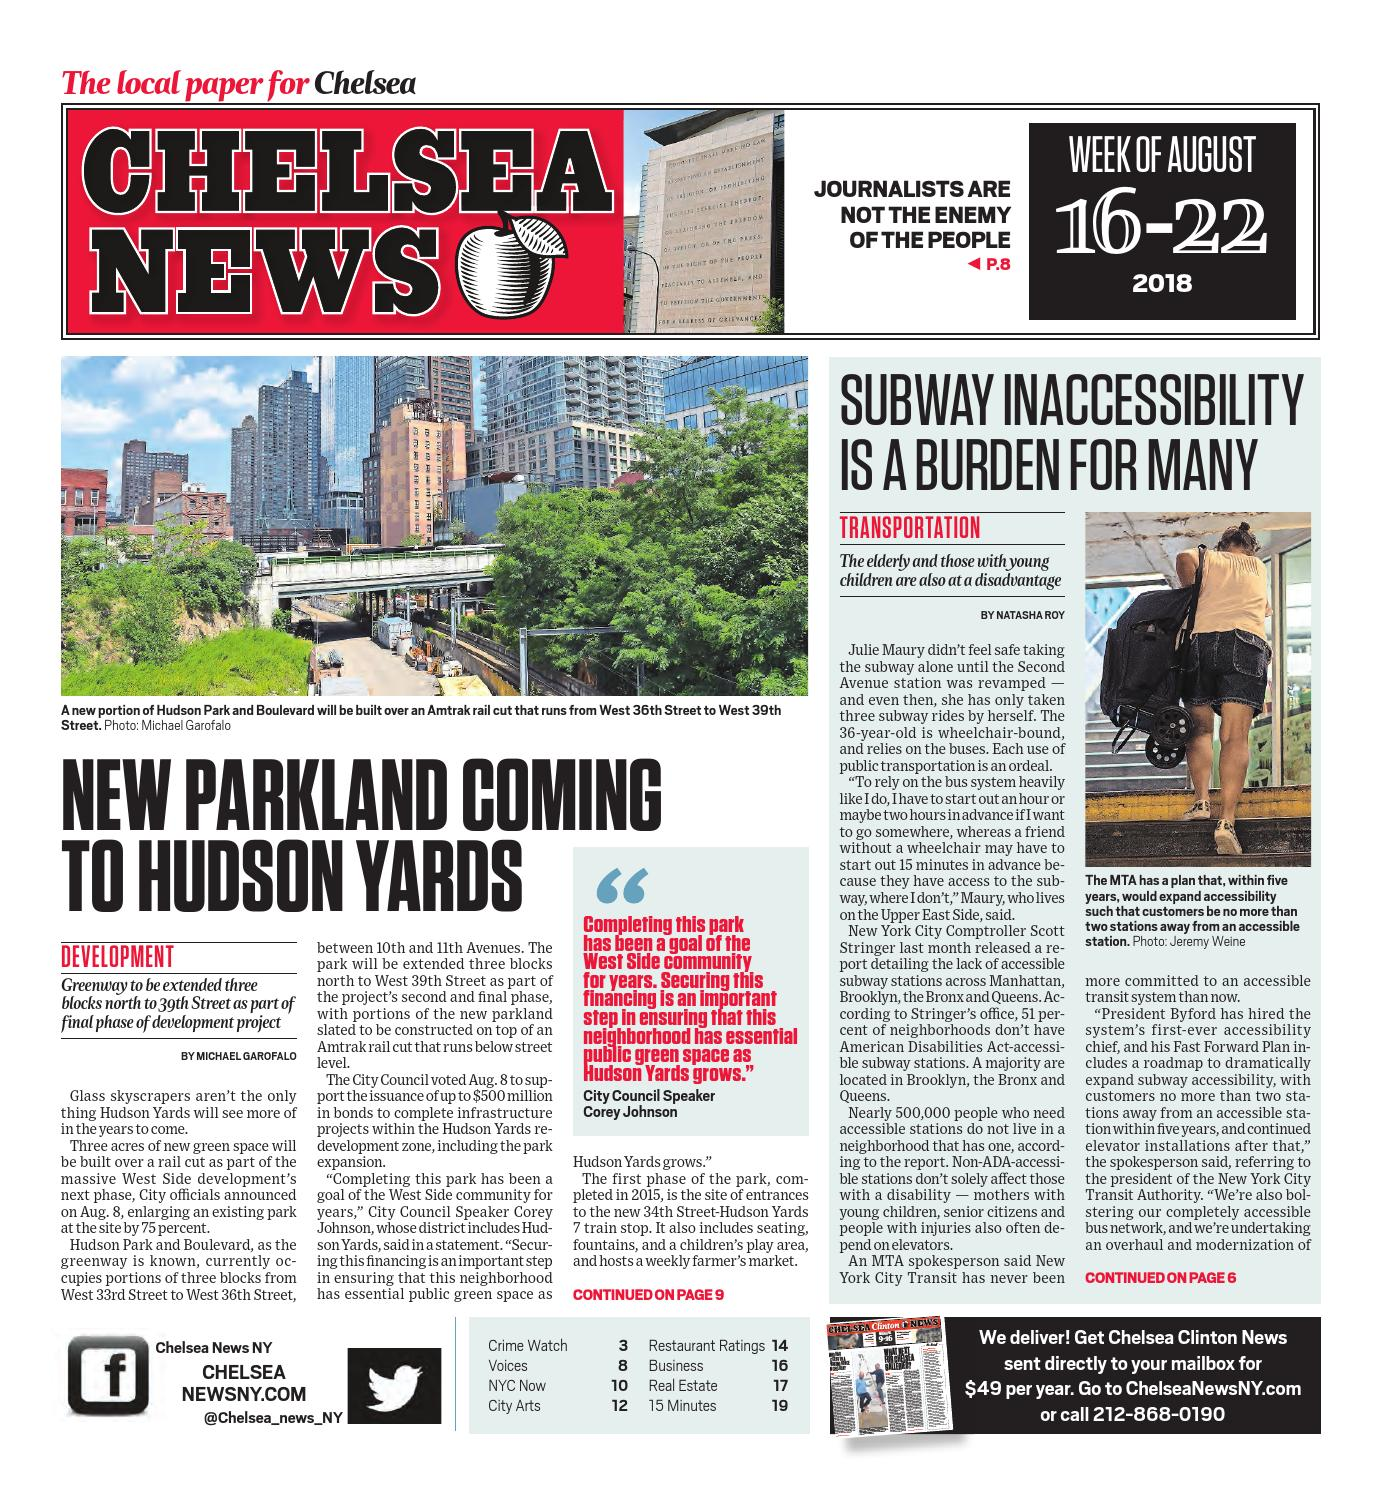 Chelsea News - August 16, 2018 by Chelsea News NY - issuu